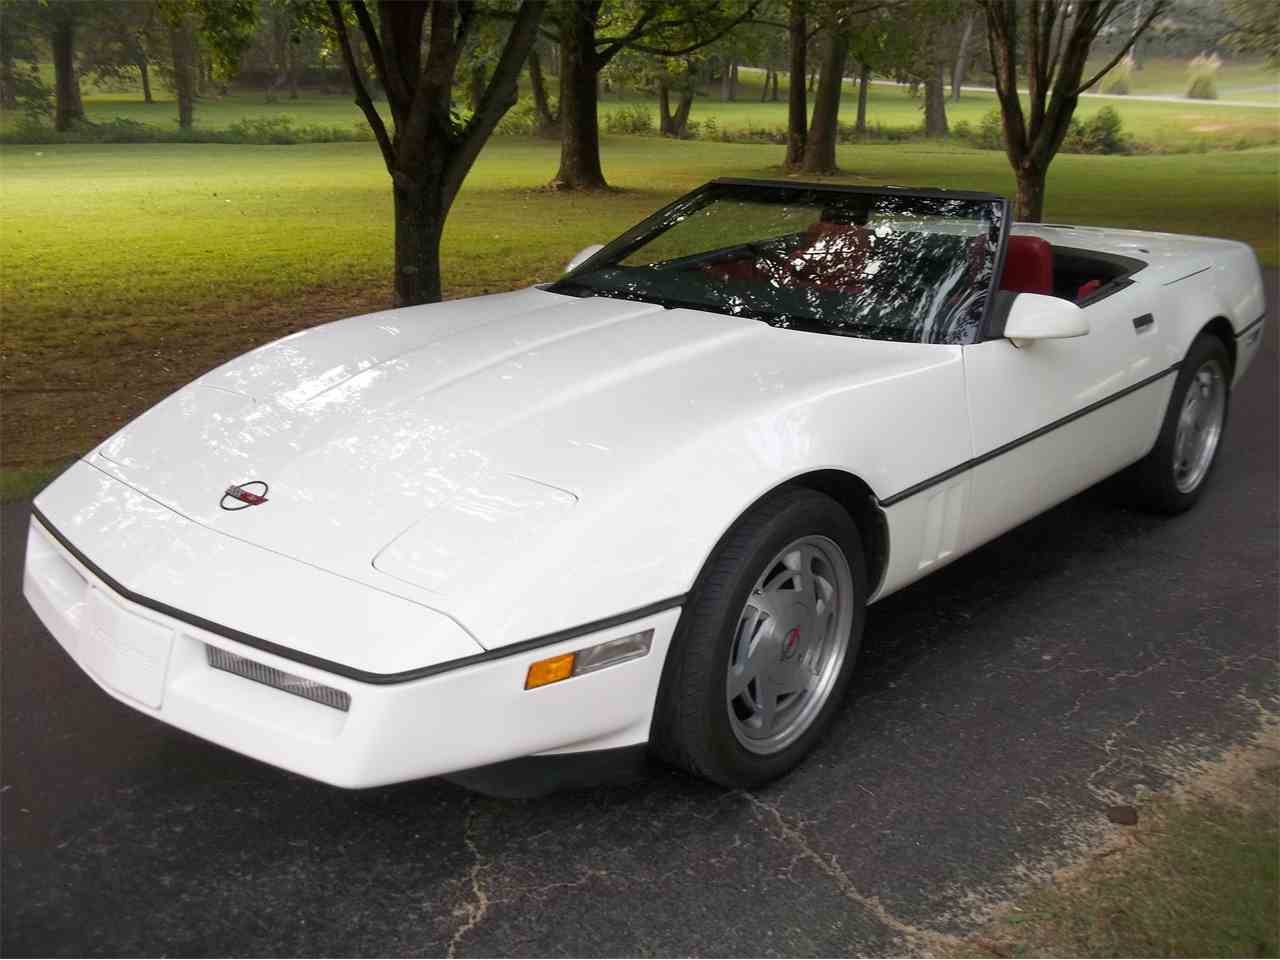 Large Picture of 1986 Chevrolet Corvette located in Tennessee - $12,500.00 Offered by a Private Seller - M2OX